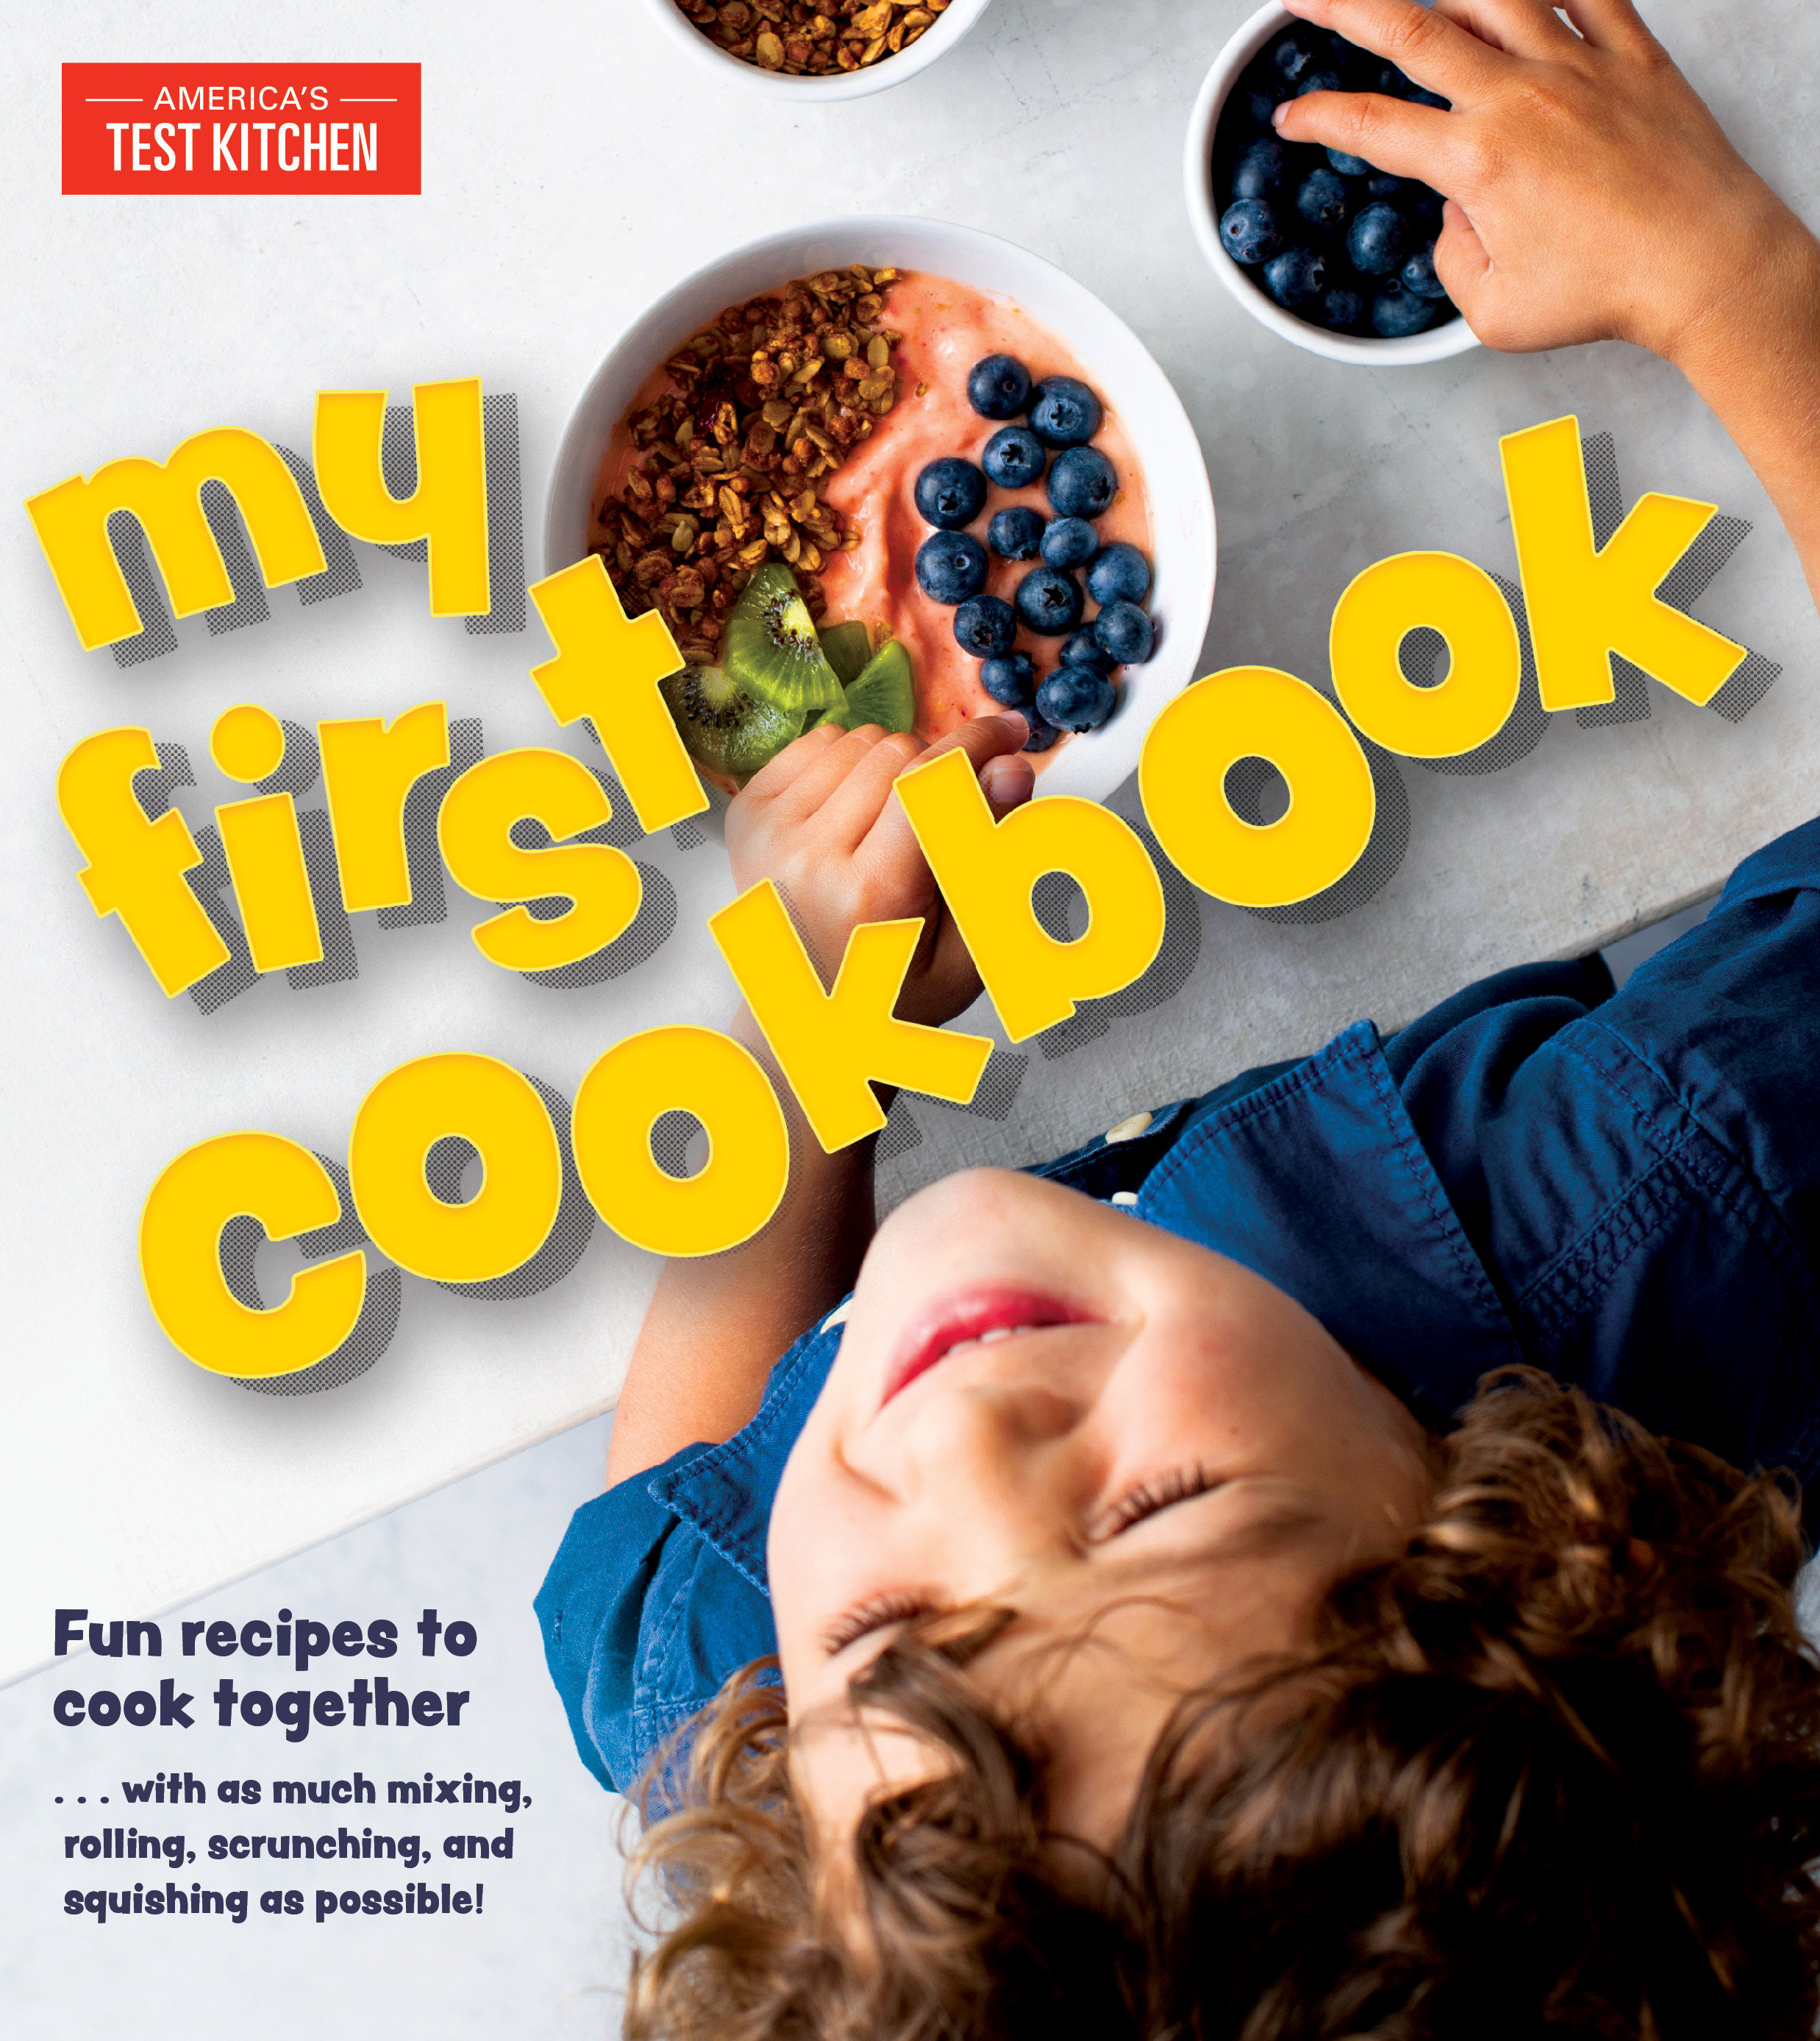 My First Cookbook Fun recipes to cook together . . . with as much mixing, rolling, scrunching, and squishing as possible!